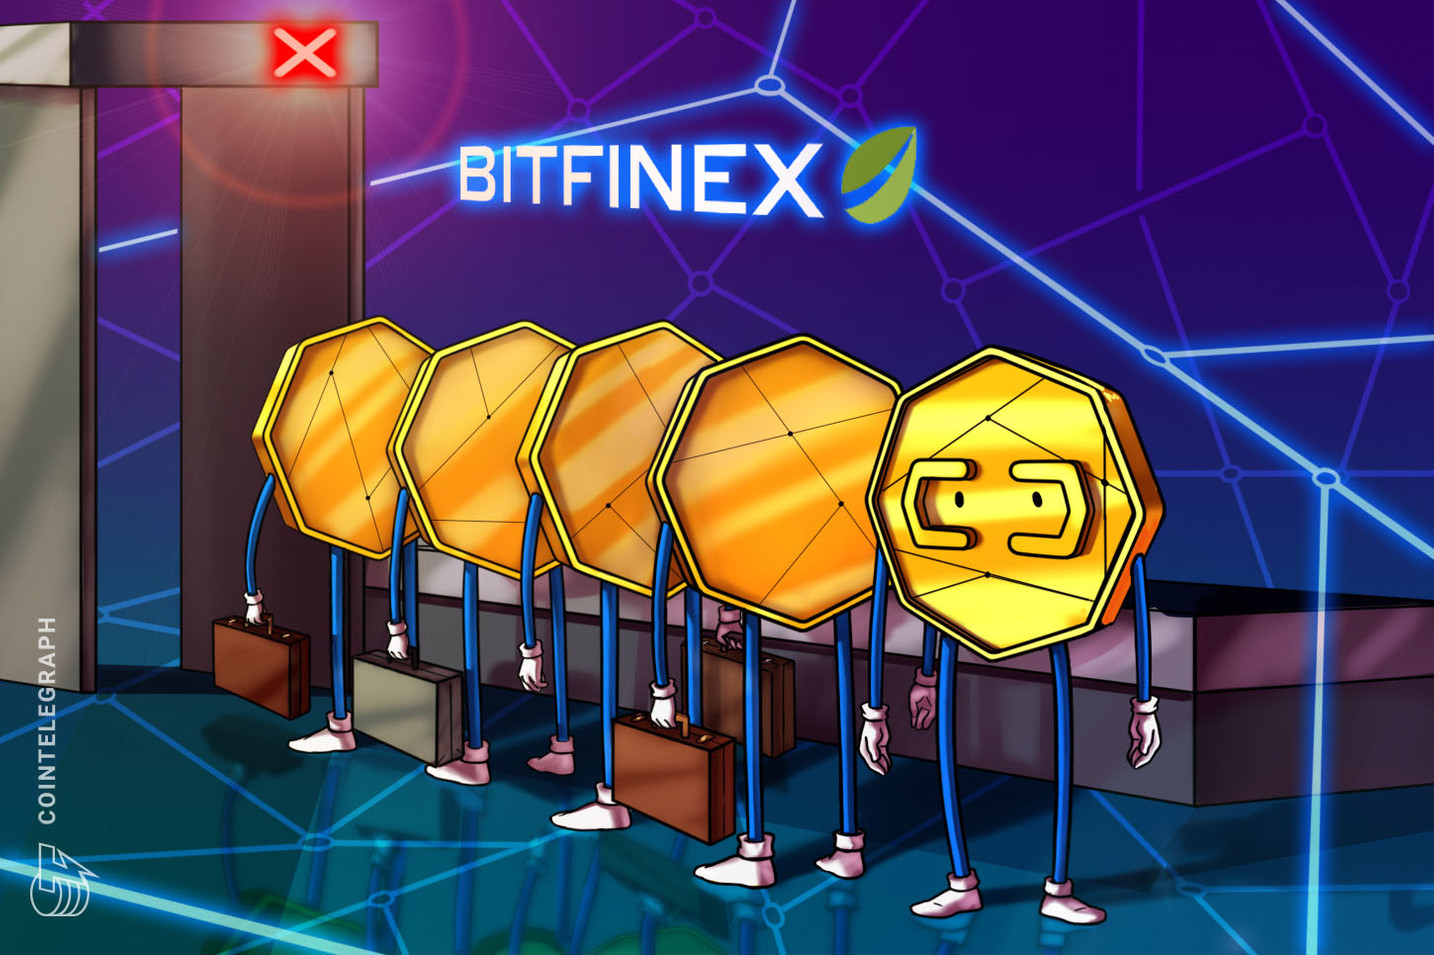 Bitfinex to Delist Nearly 50 Cryptocurrency Trading Pairs on March 6